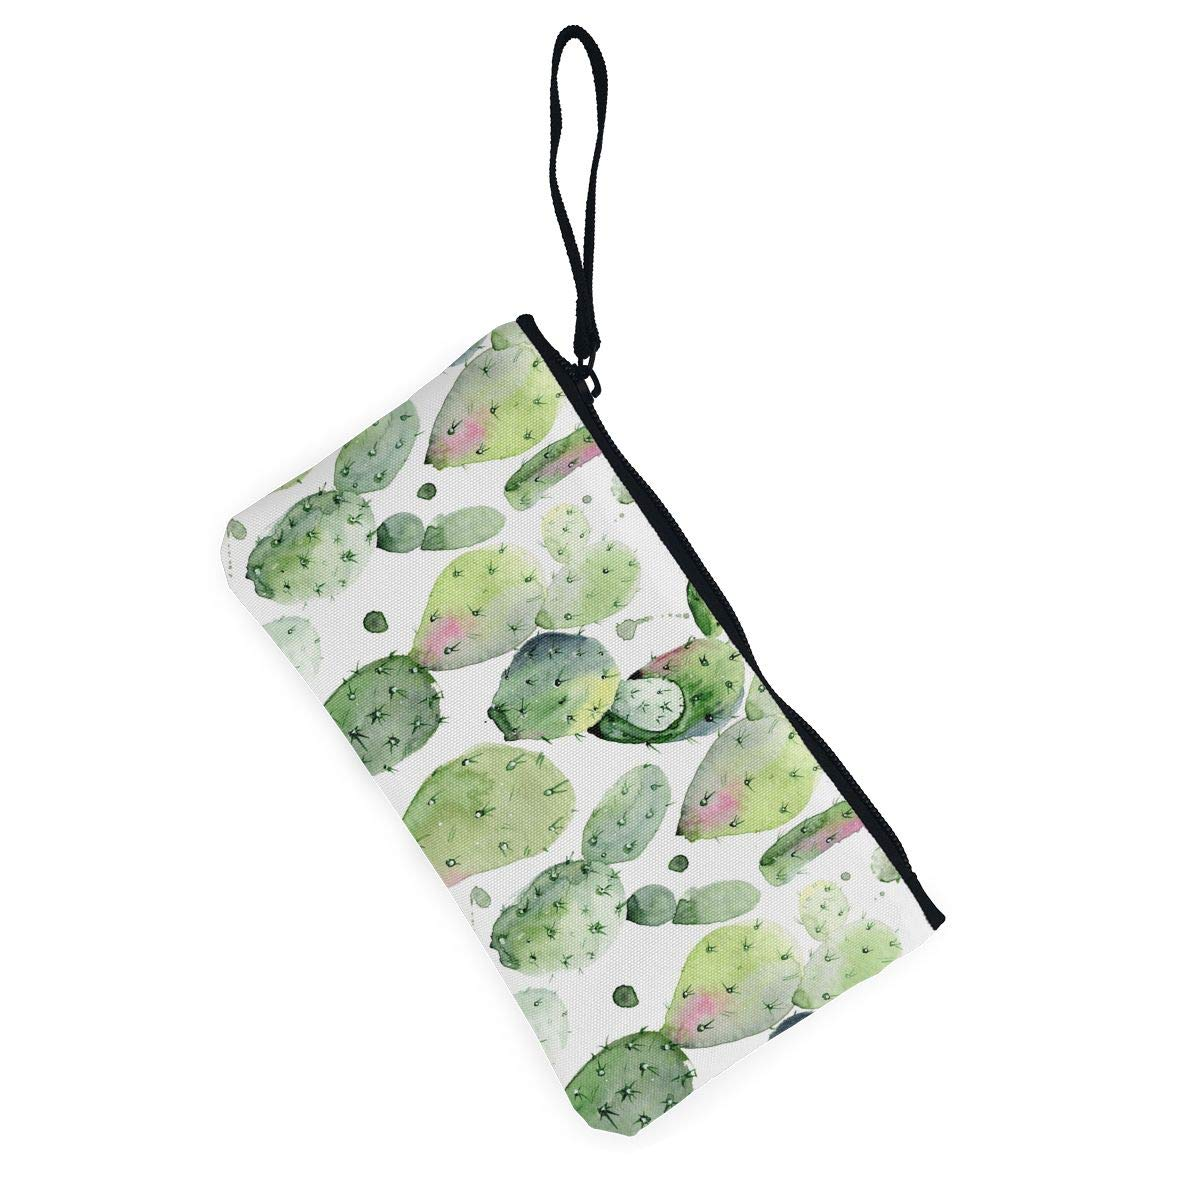 Watercolor Cactus Pattern Canvas Coin Purse Cute Change Pouch Money Cash Bag Multifunctional Cellphone Bag with Handle